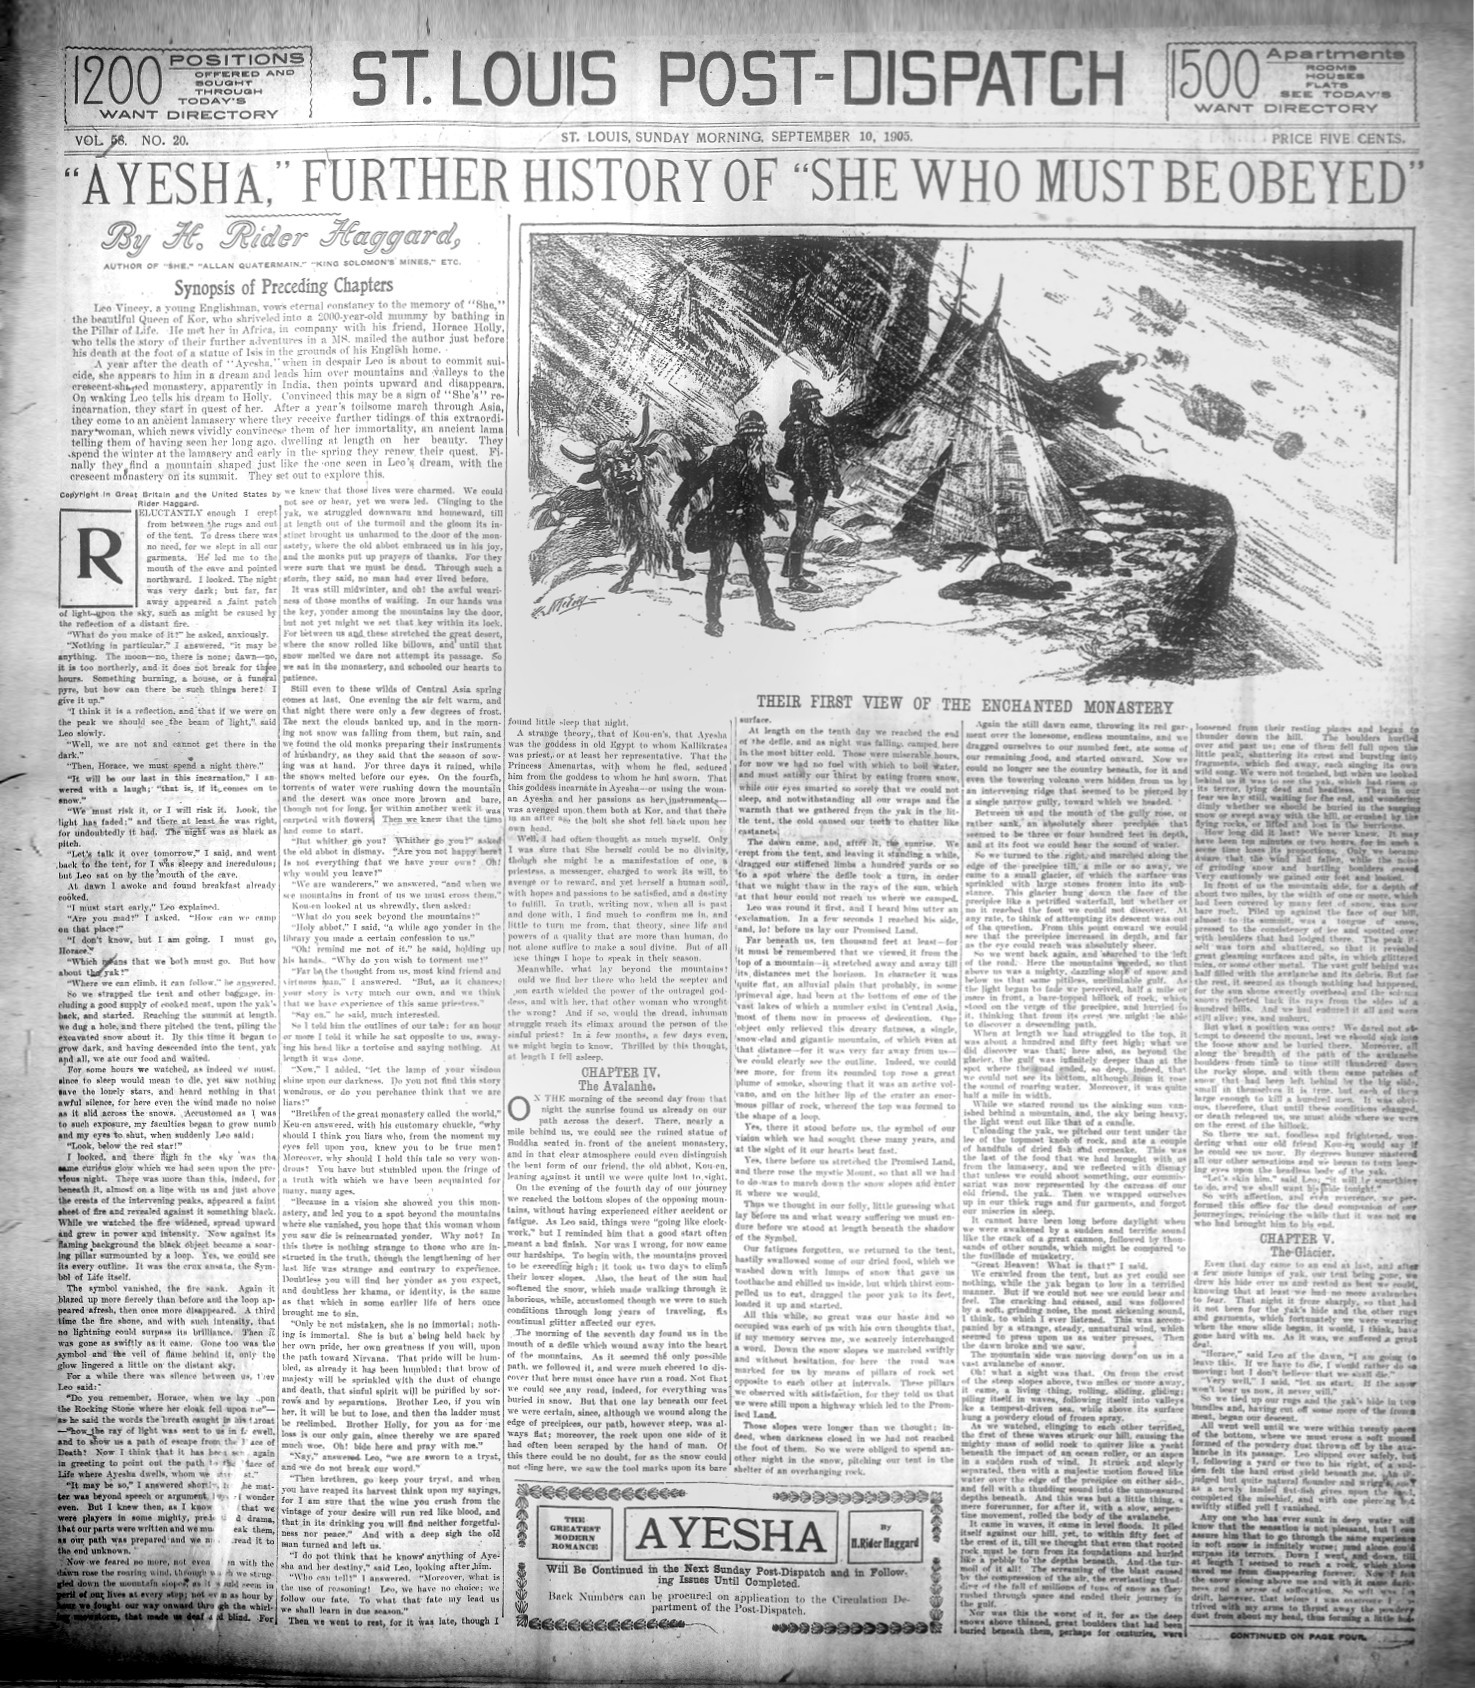 Theirfirststlouisdispatch10sep1905